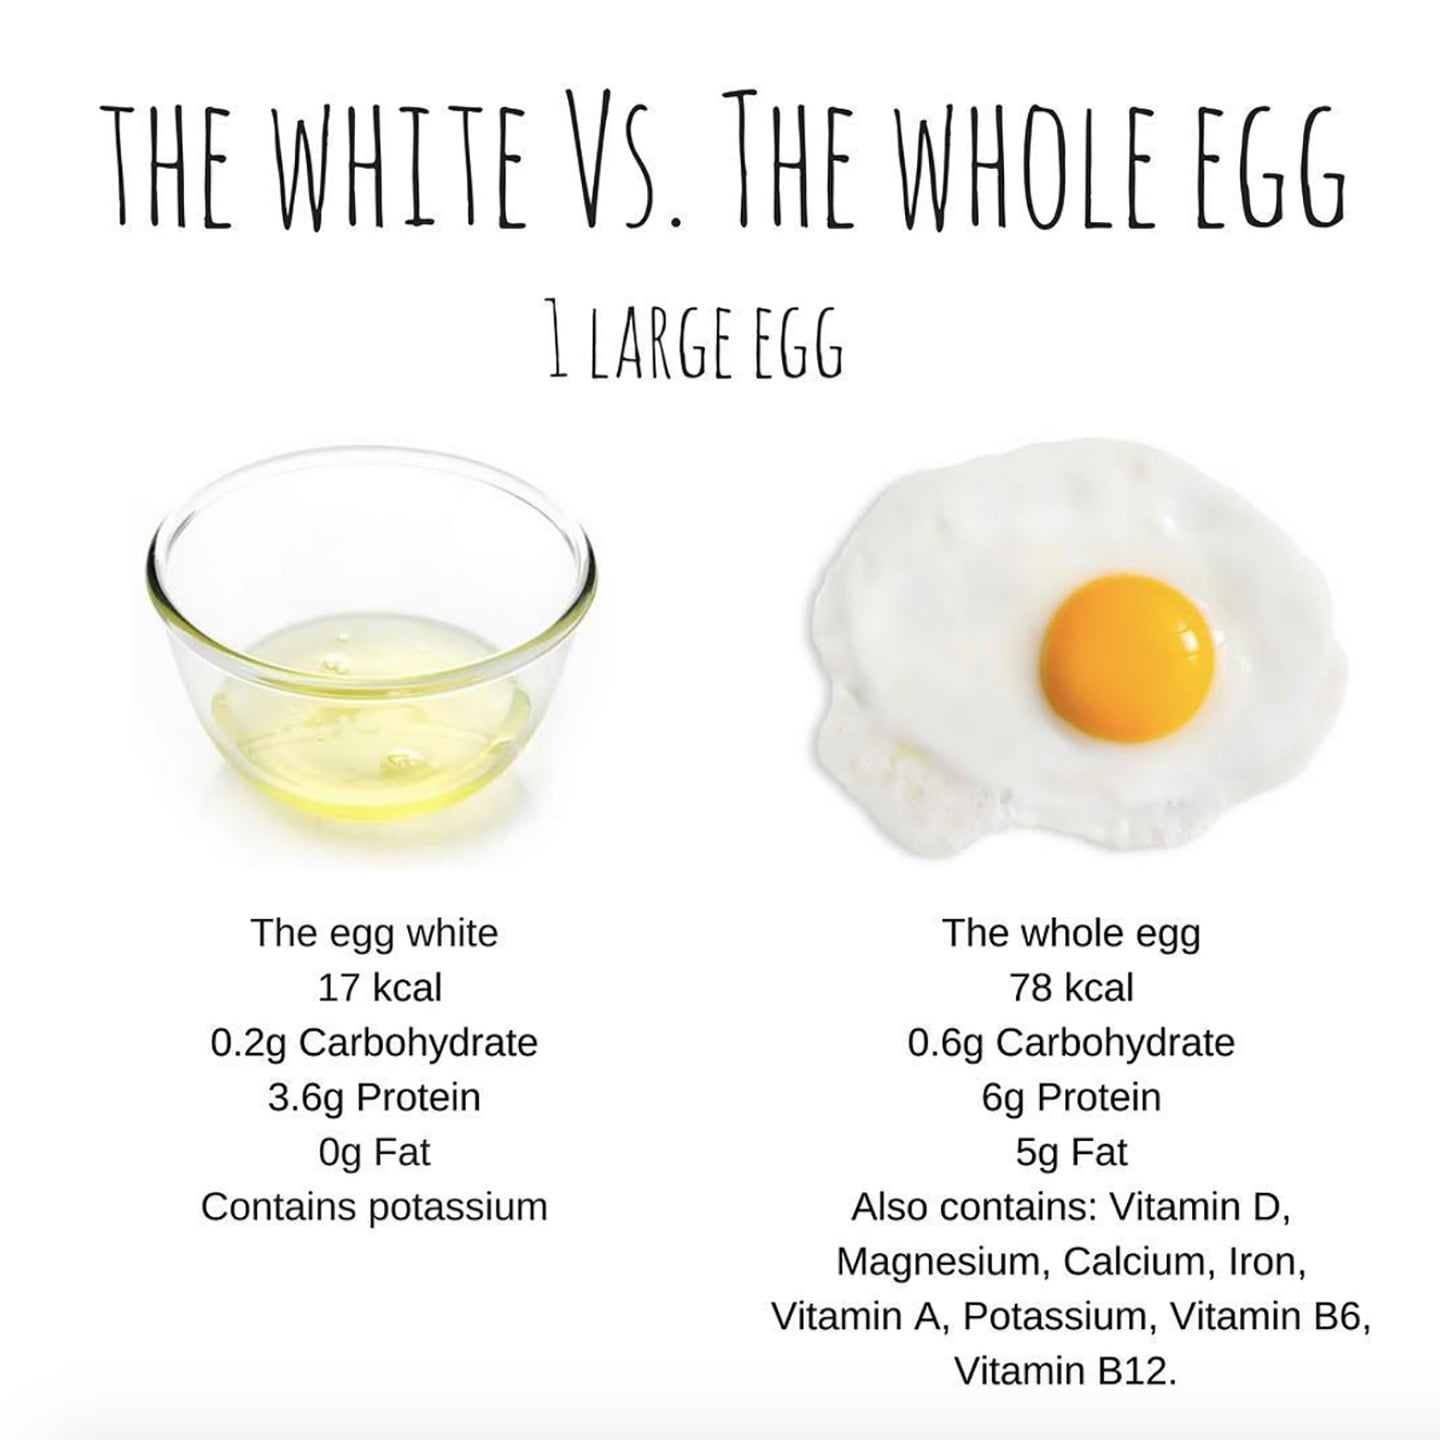 eat whole egg or just white